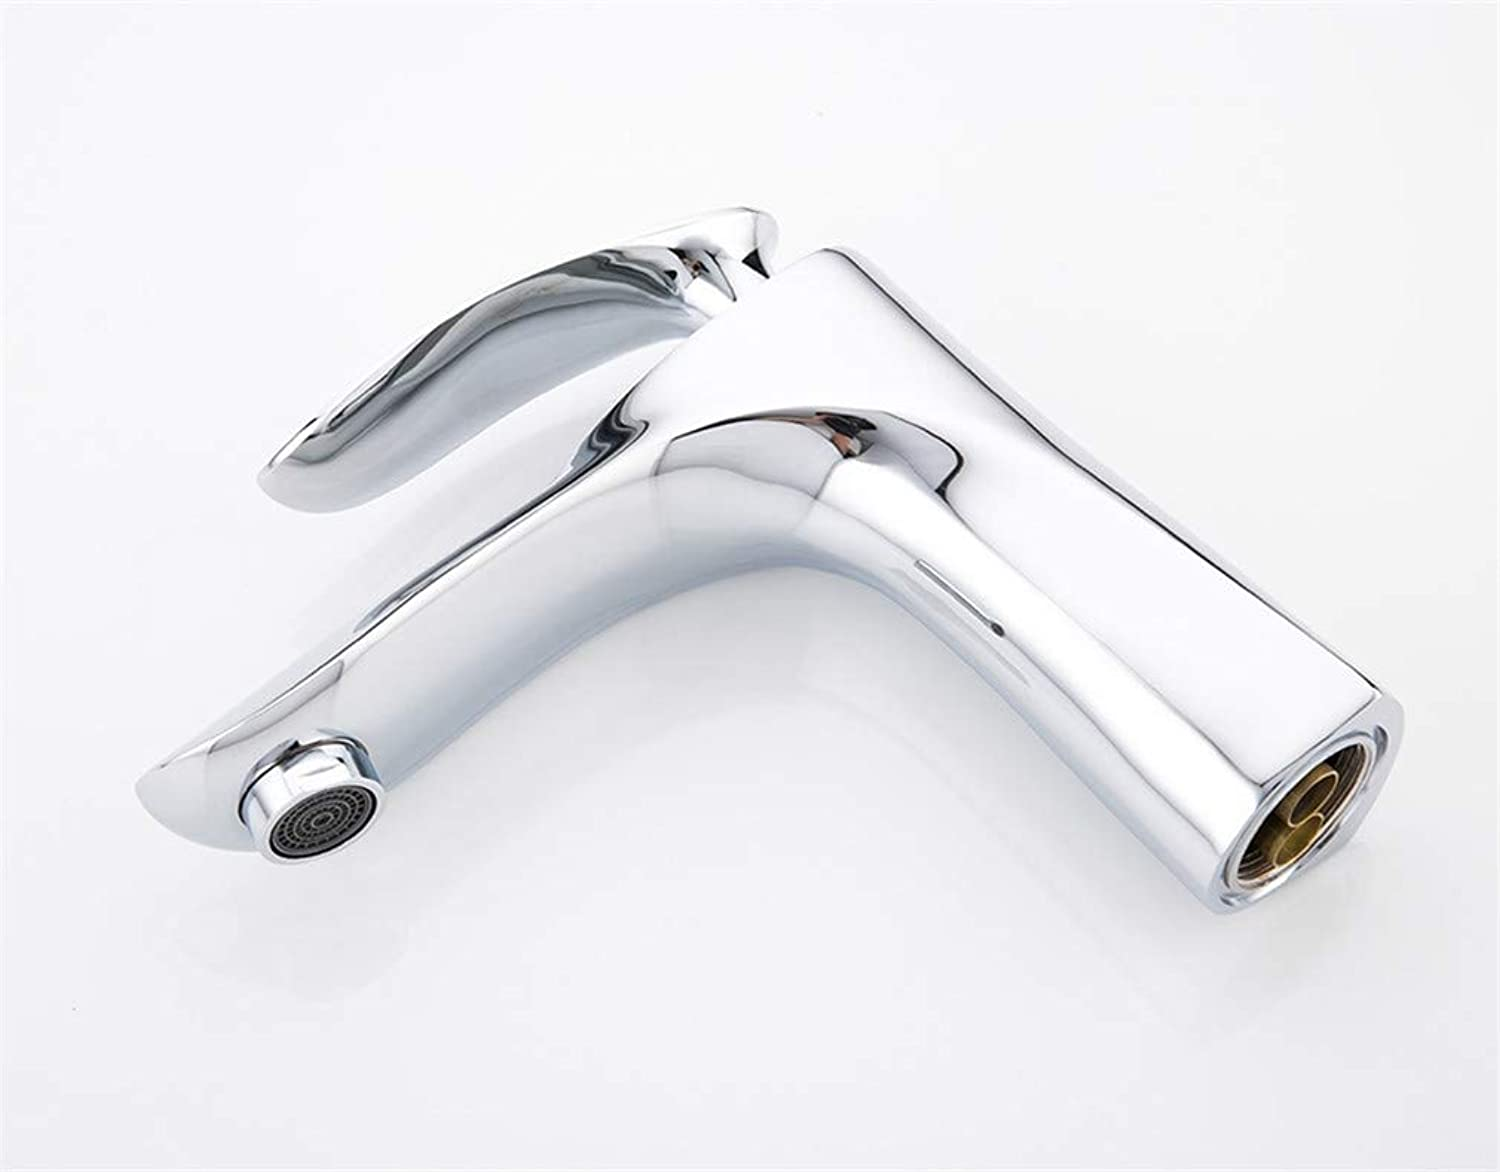 Pull Out The Pull Down Stainless Steelhot and Cold Water Basin Faucet for Bathroom Tap Single Handle Sink Wash Basin Tap Chrome Plated Zinc Water Faucets